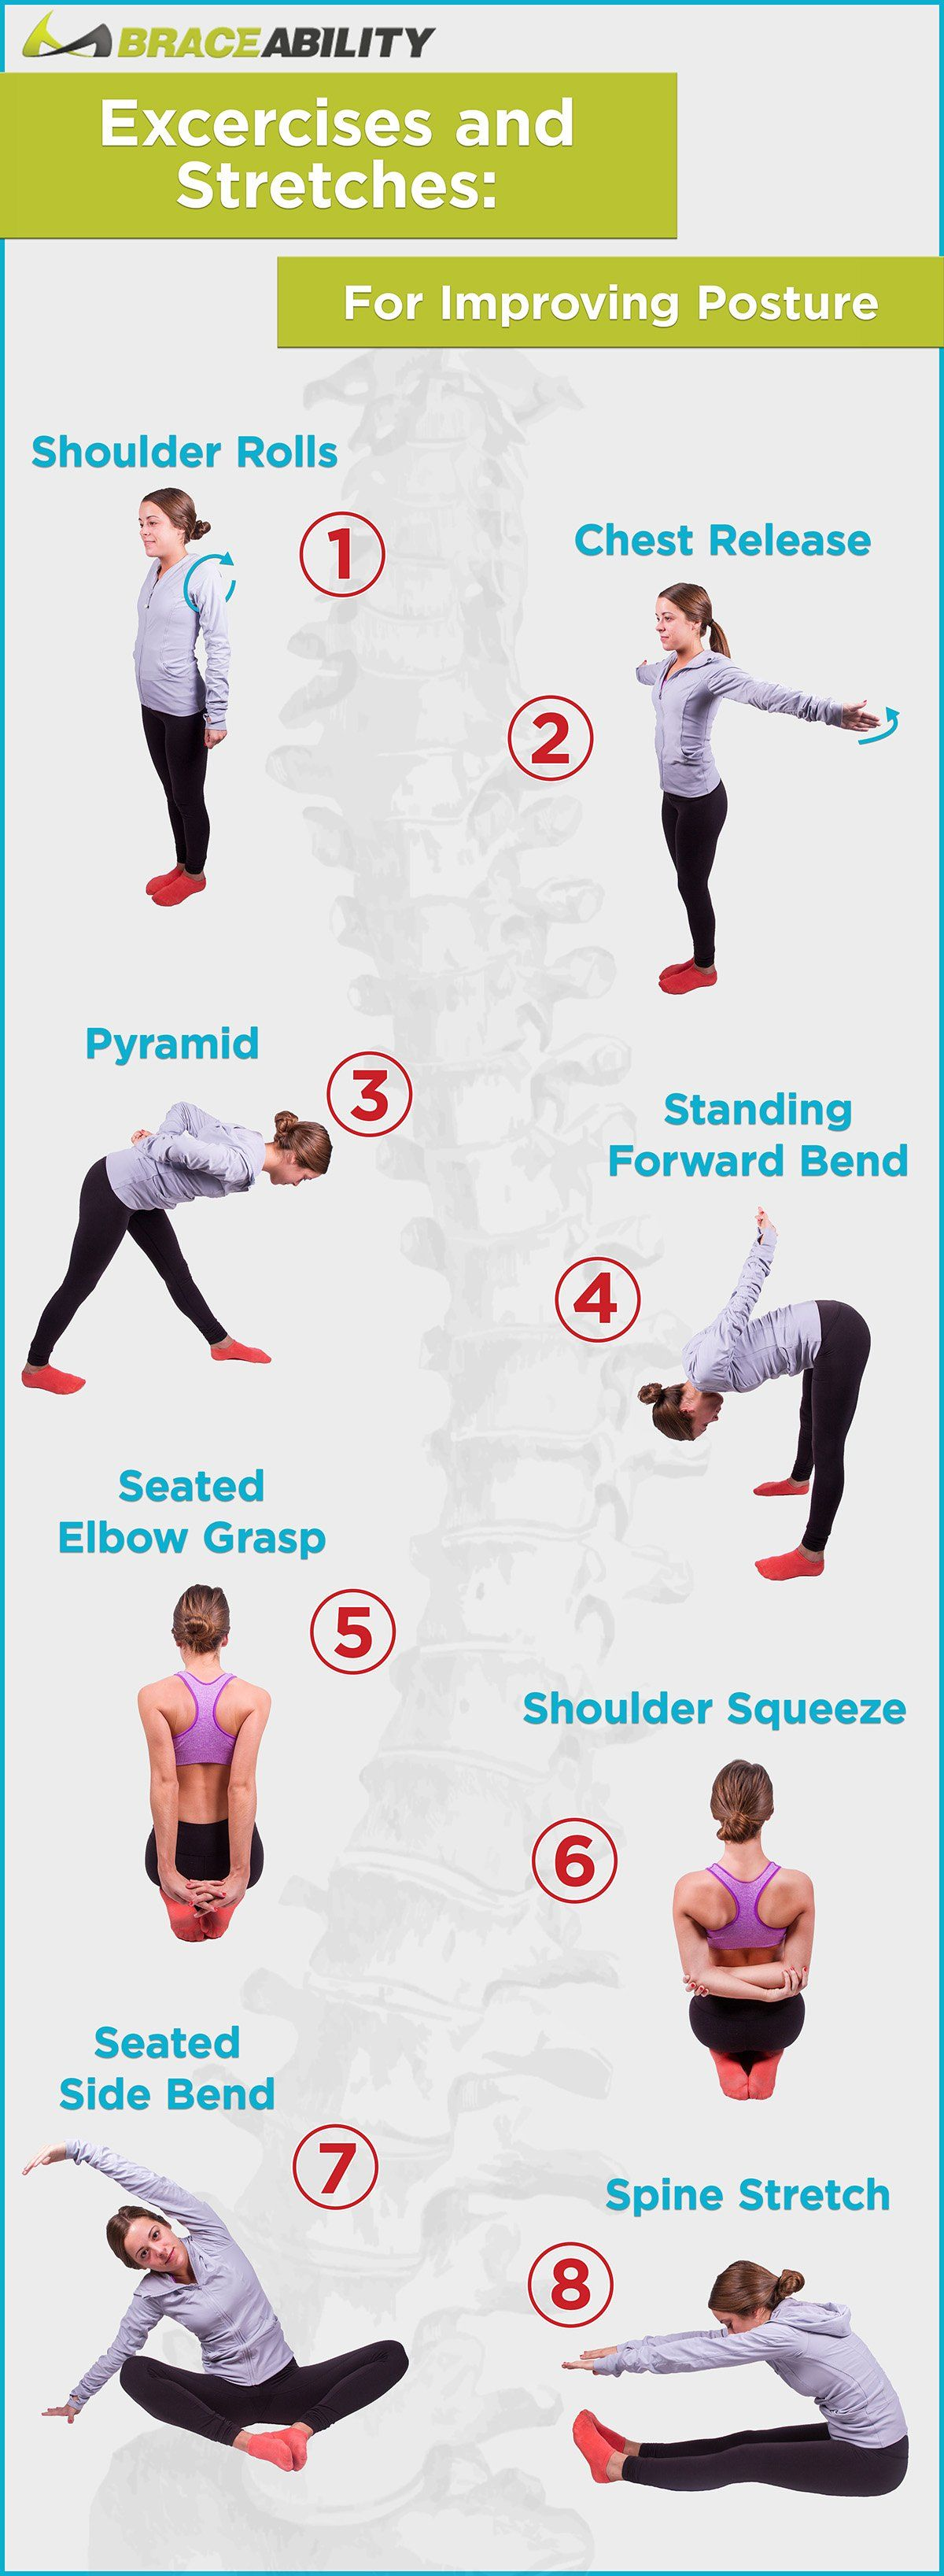 Try These Exercises For Bad Posture And Prevent Future